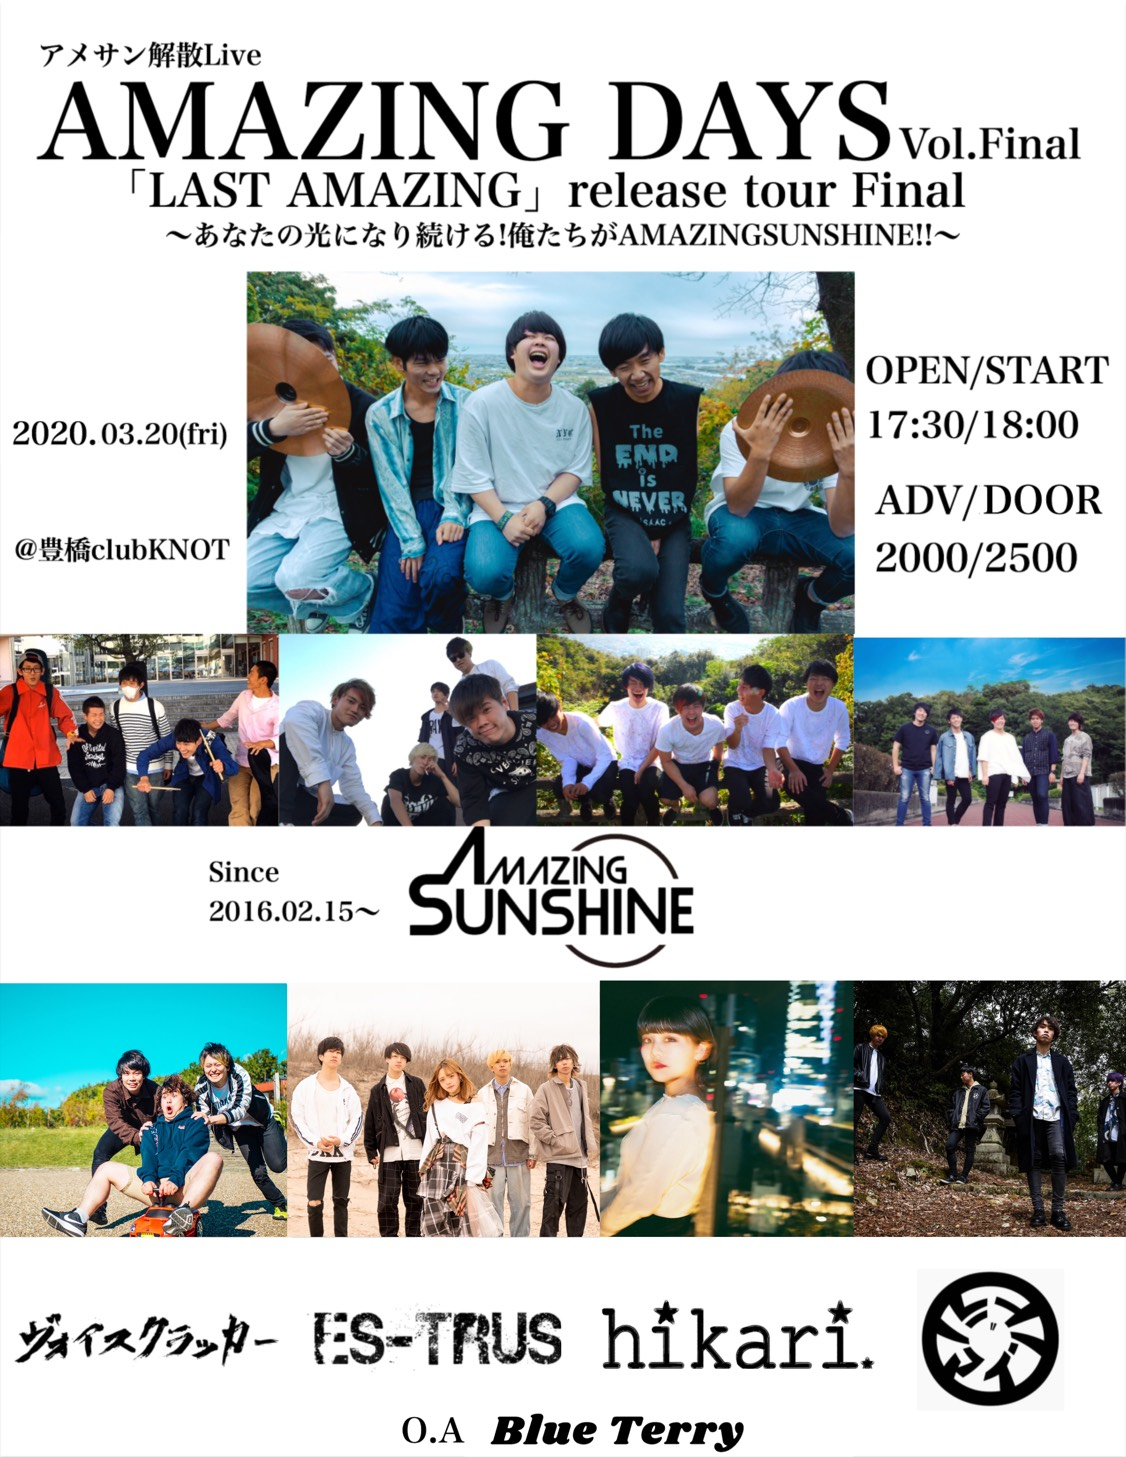 アメサン 解散Live AMAZING DAYS Vol.Final